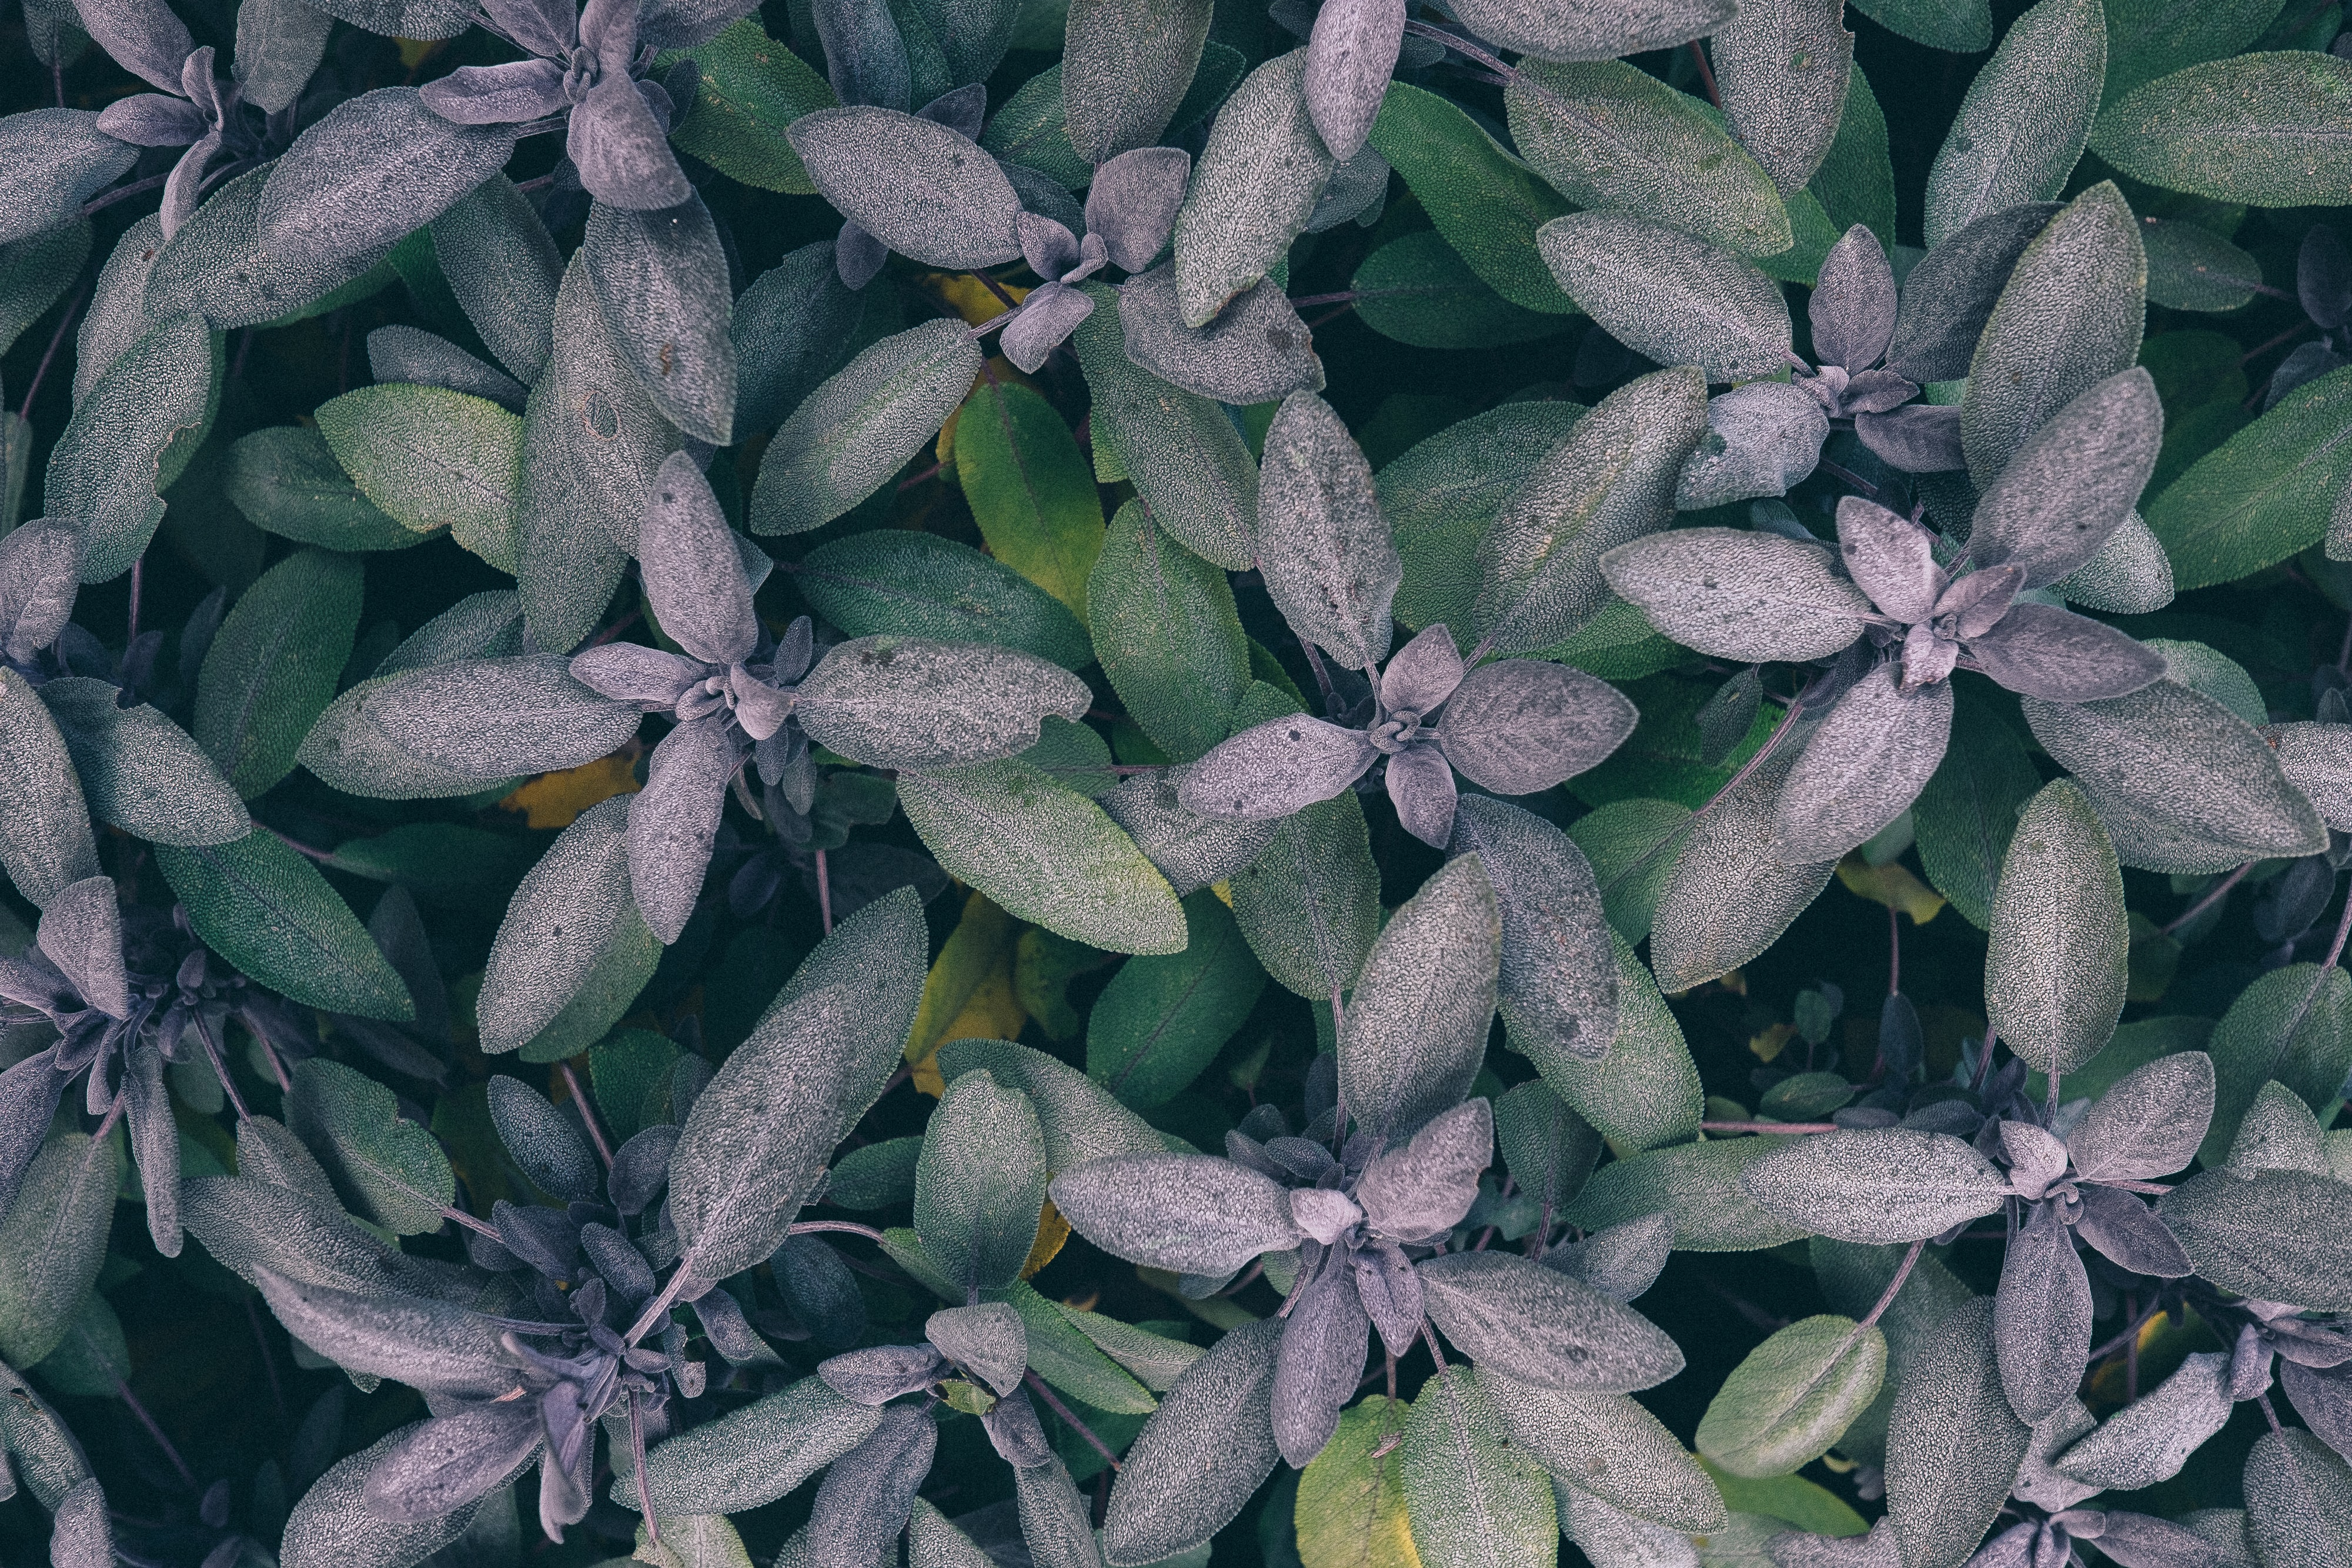 green-and-gray leaf plants